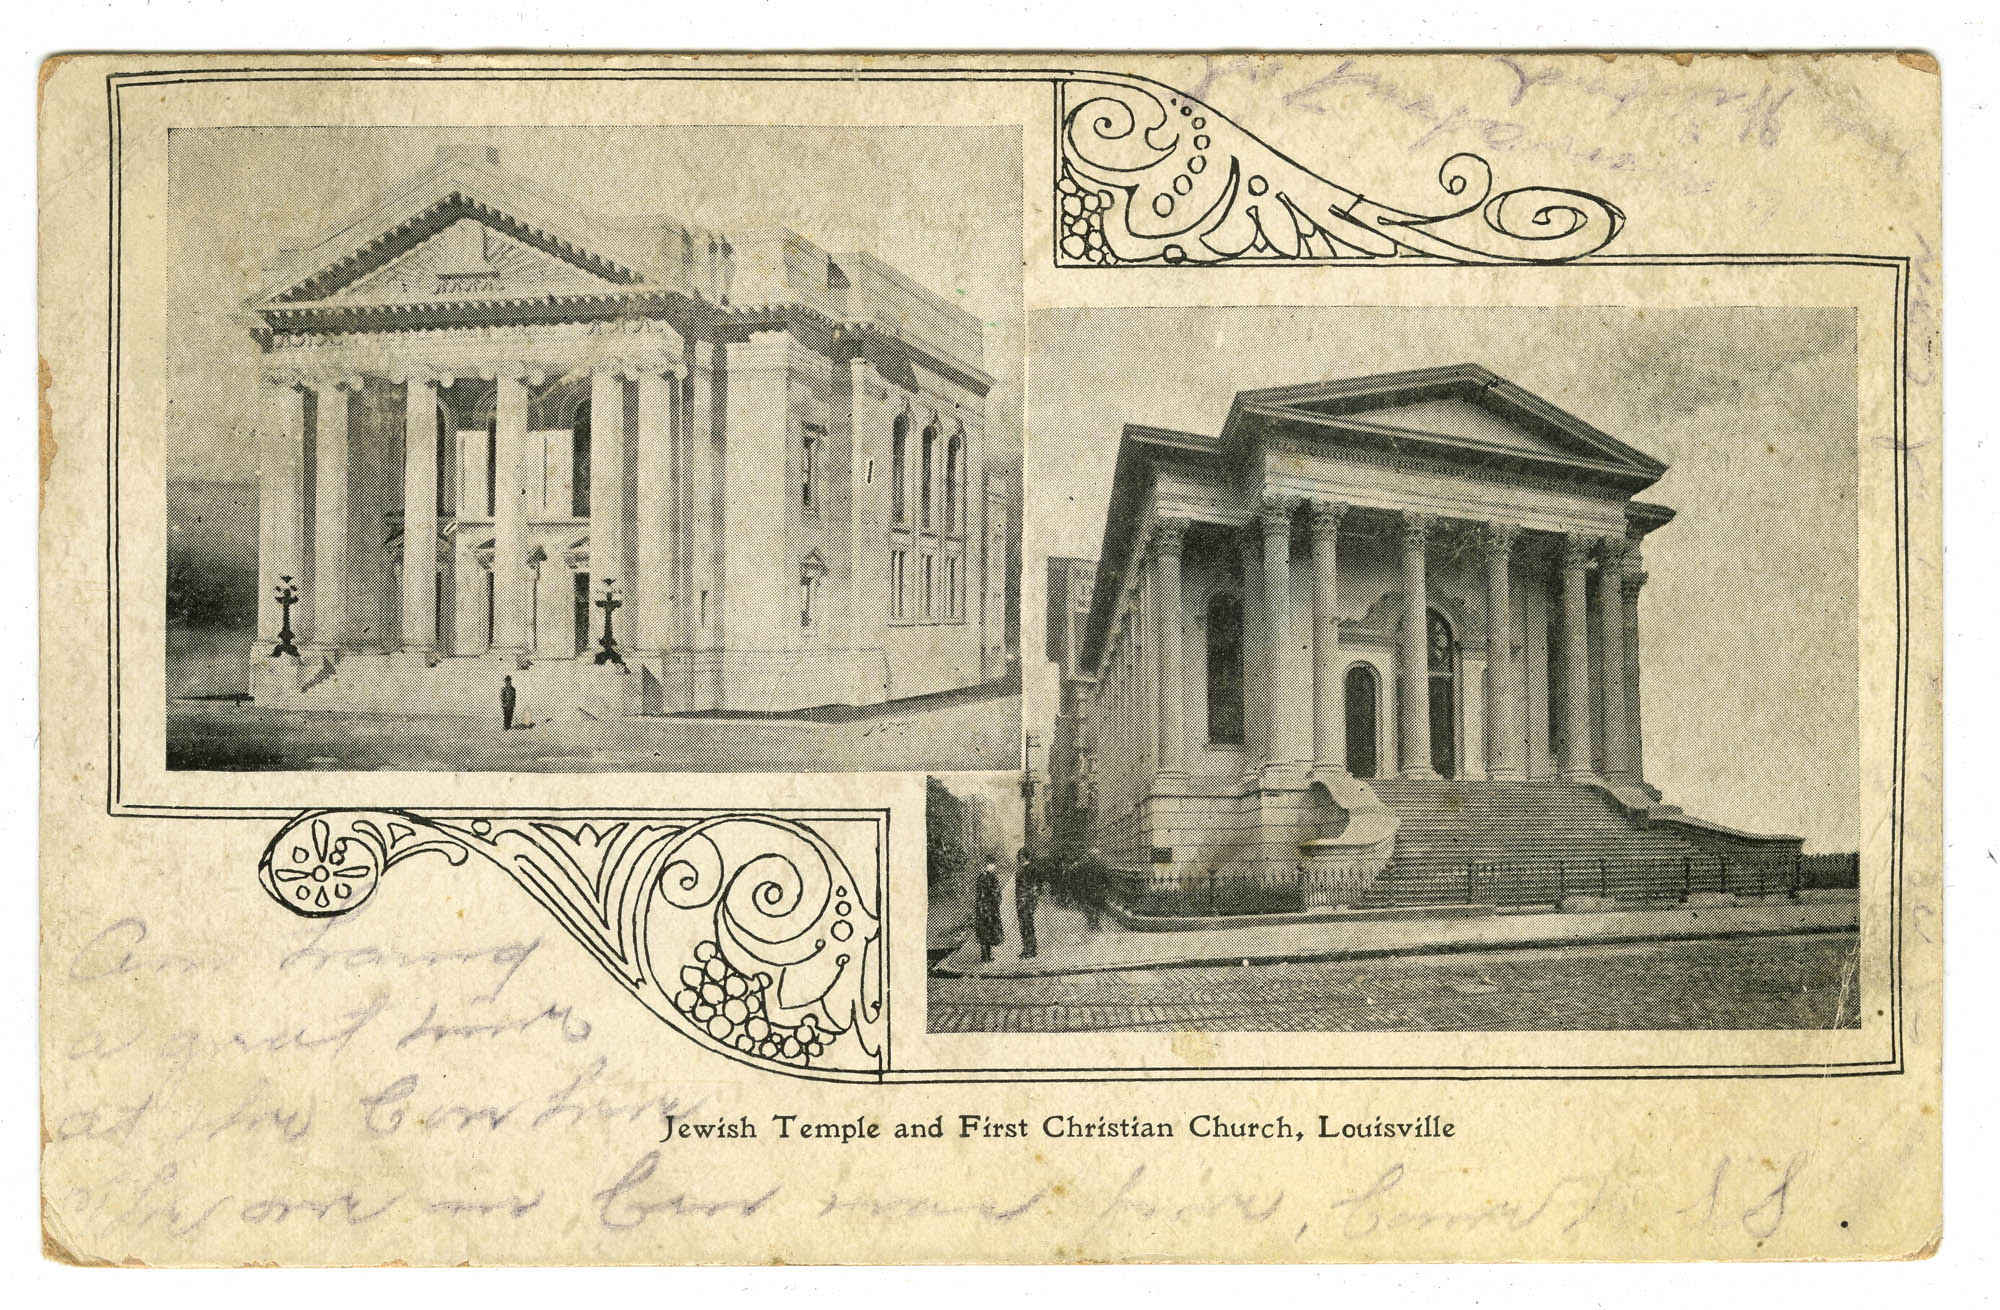 Jewish Temple and First Christian Church, Louisville